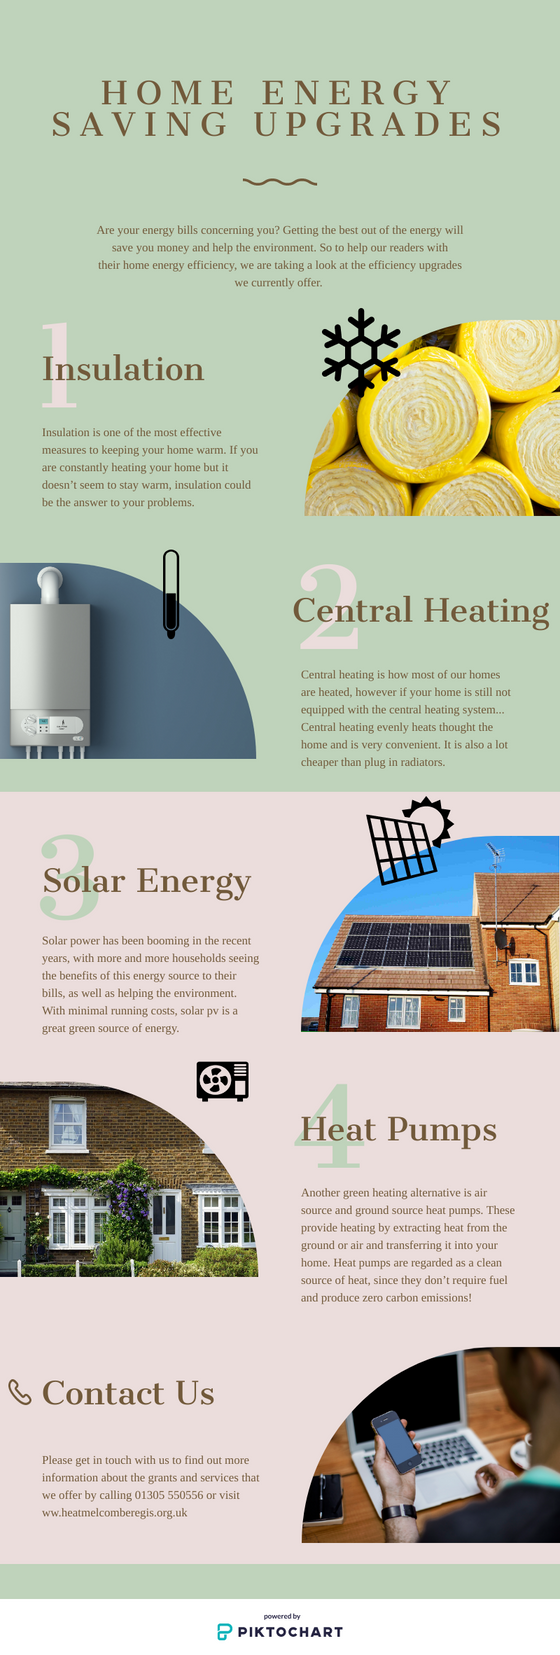 Home Energy Efficiency Upgrades For You